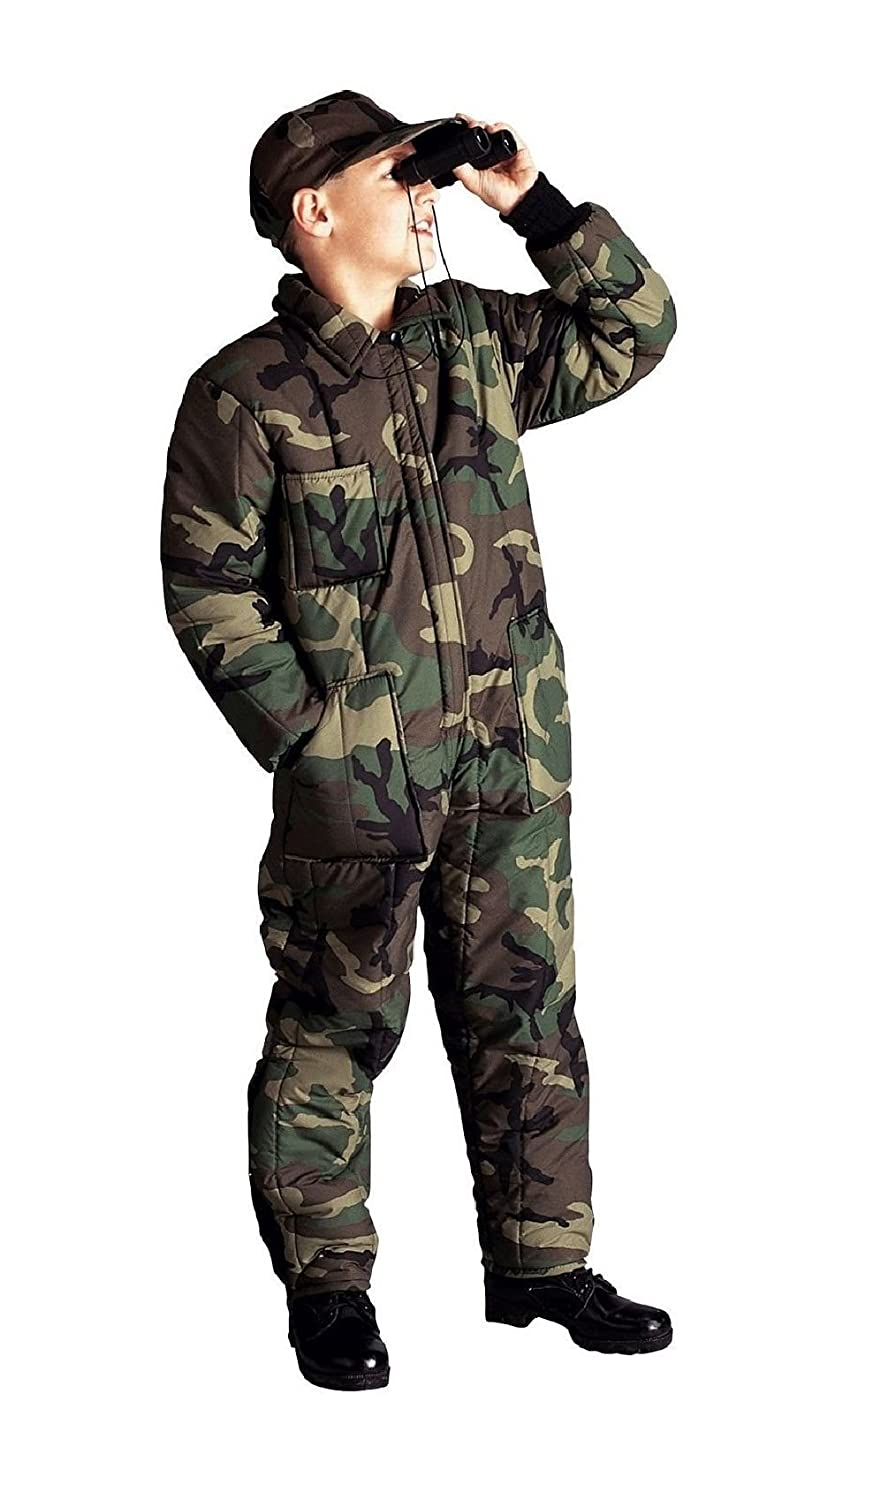 Amazon.com  Kids Wood Camo Insulated Coveralls - Boys Winter Overalls Camo  Super Warm  Xs-Xl  Clothing 7ab84ab19861